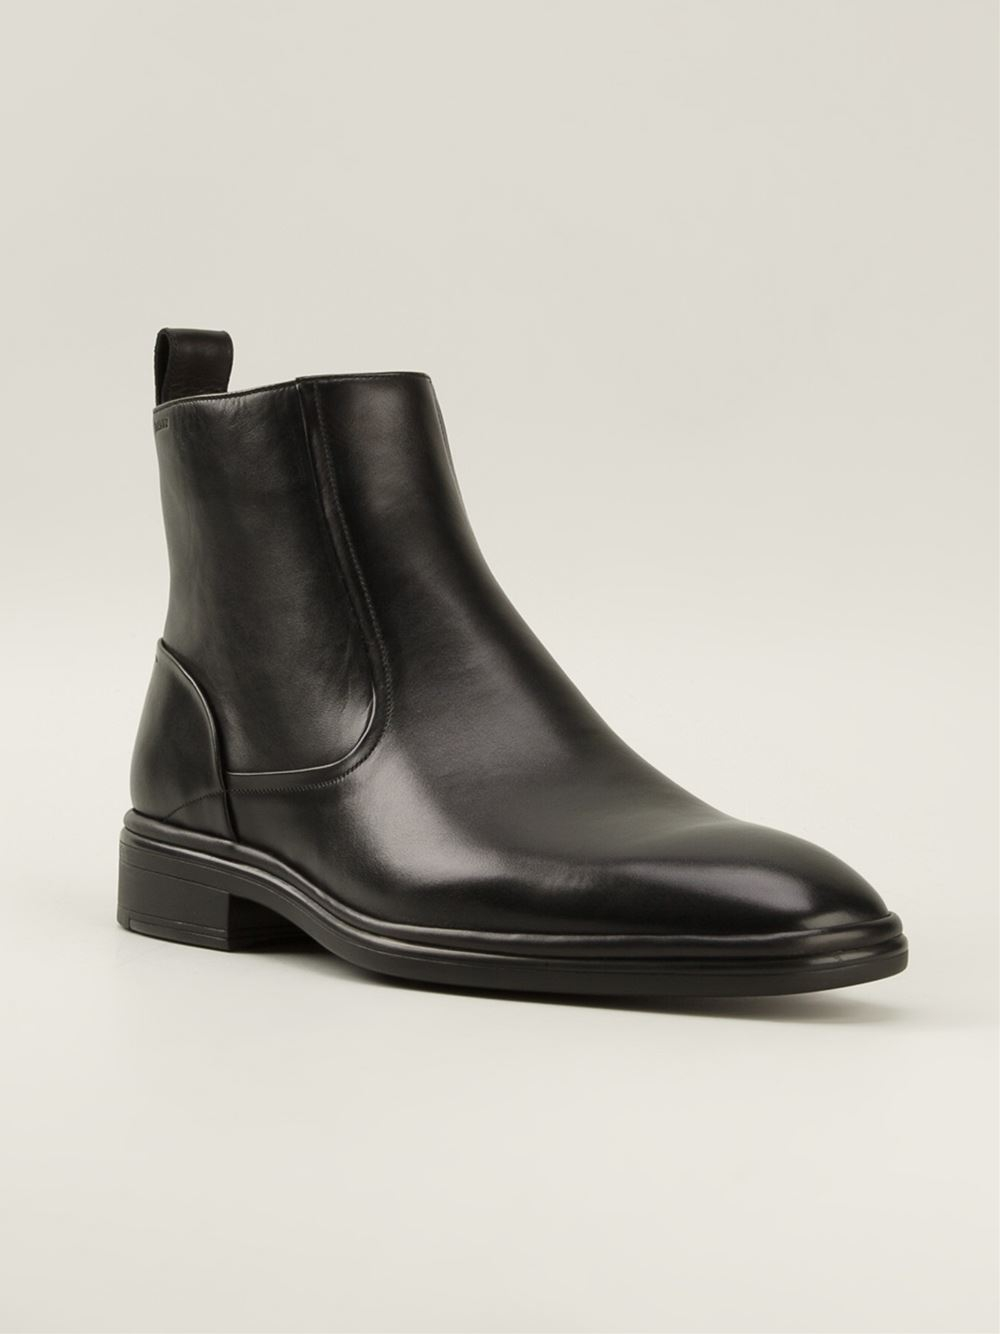 Lyst Bally Ankle Boots In Black For Men